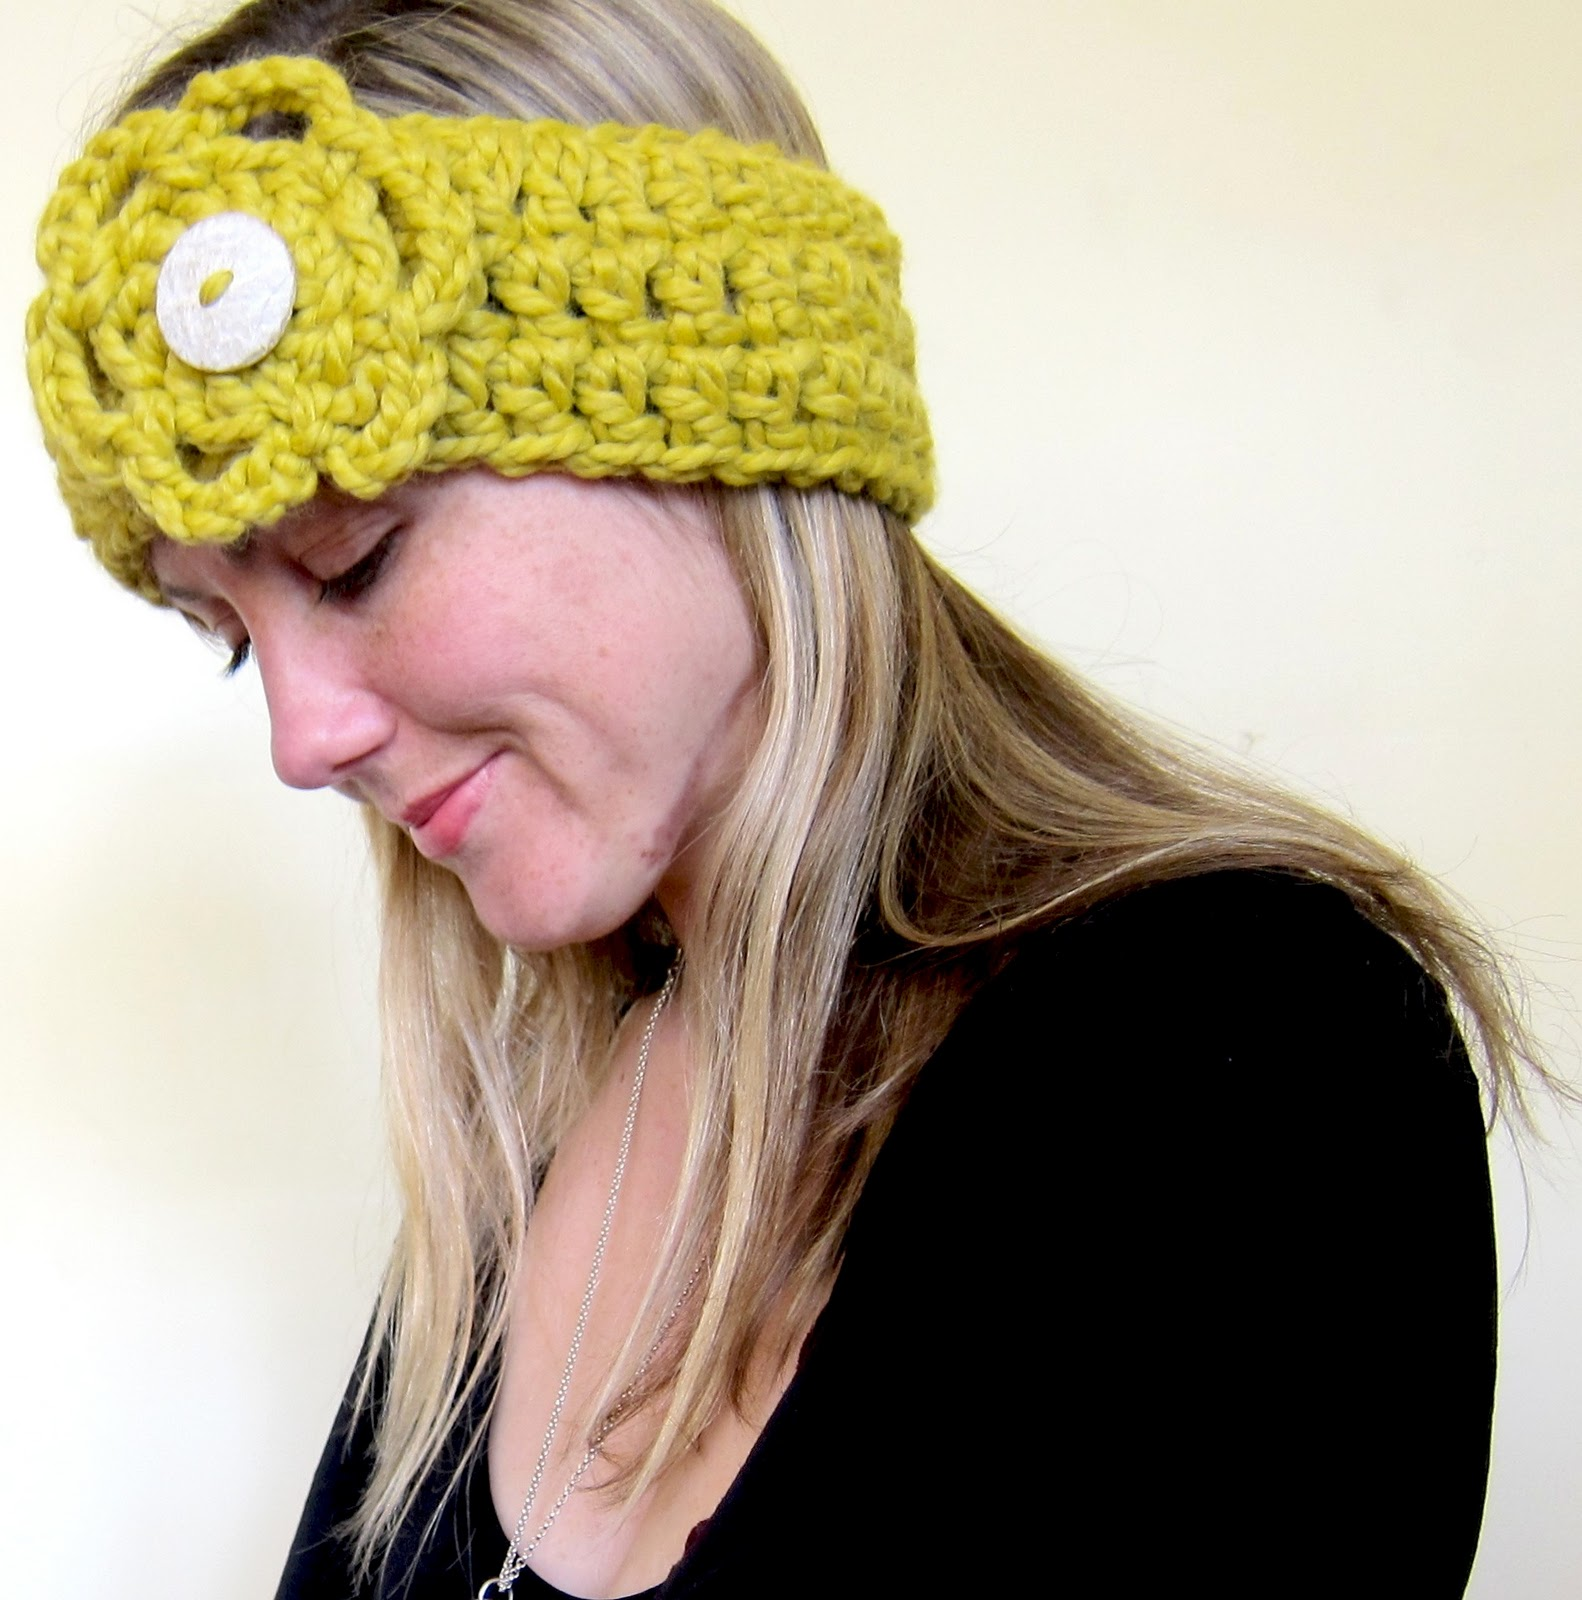 Free Crochet Pattern Headband Ear Warmer : CROCHET HEADBANDS PATTERNS Free Patterns